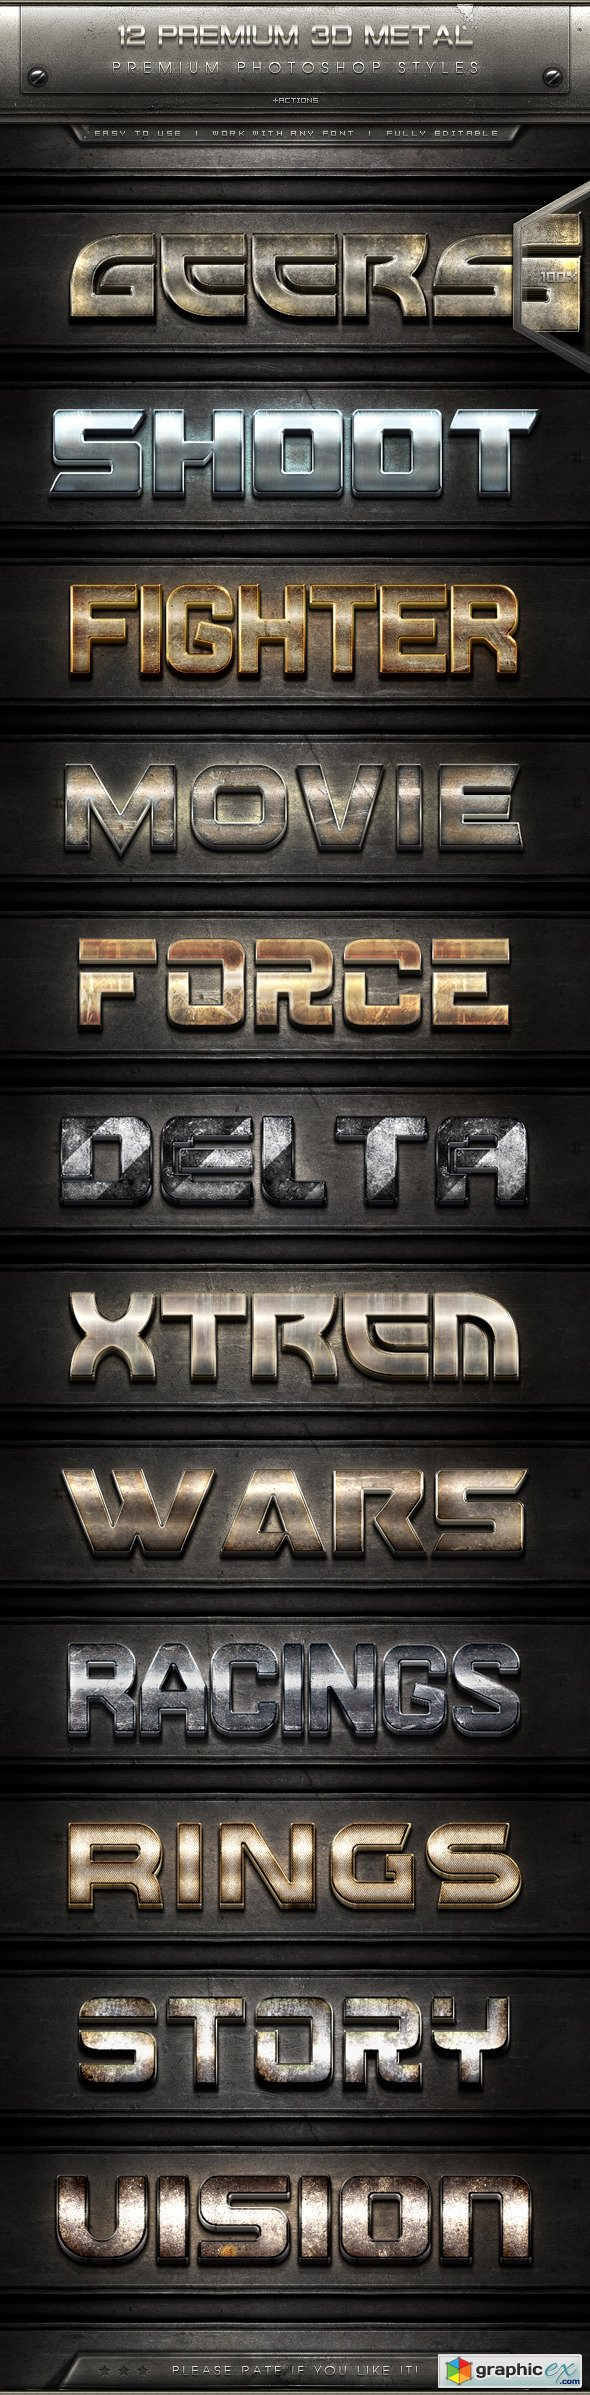 12 Premium 3D Metal Text Effect Styles + Actions